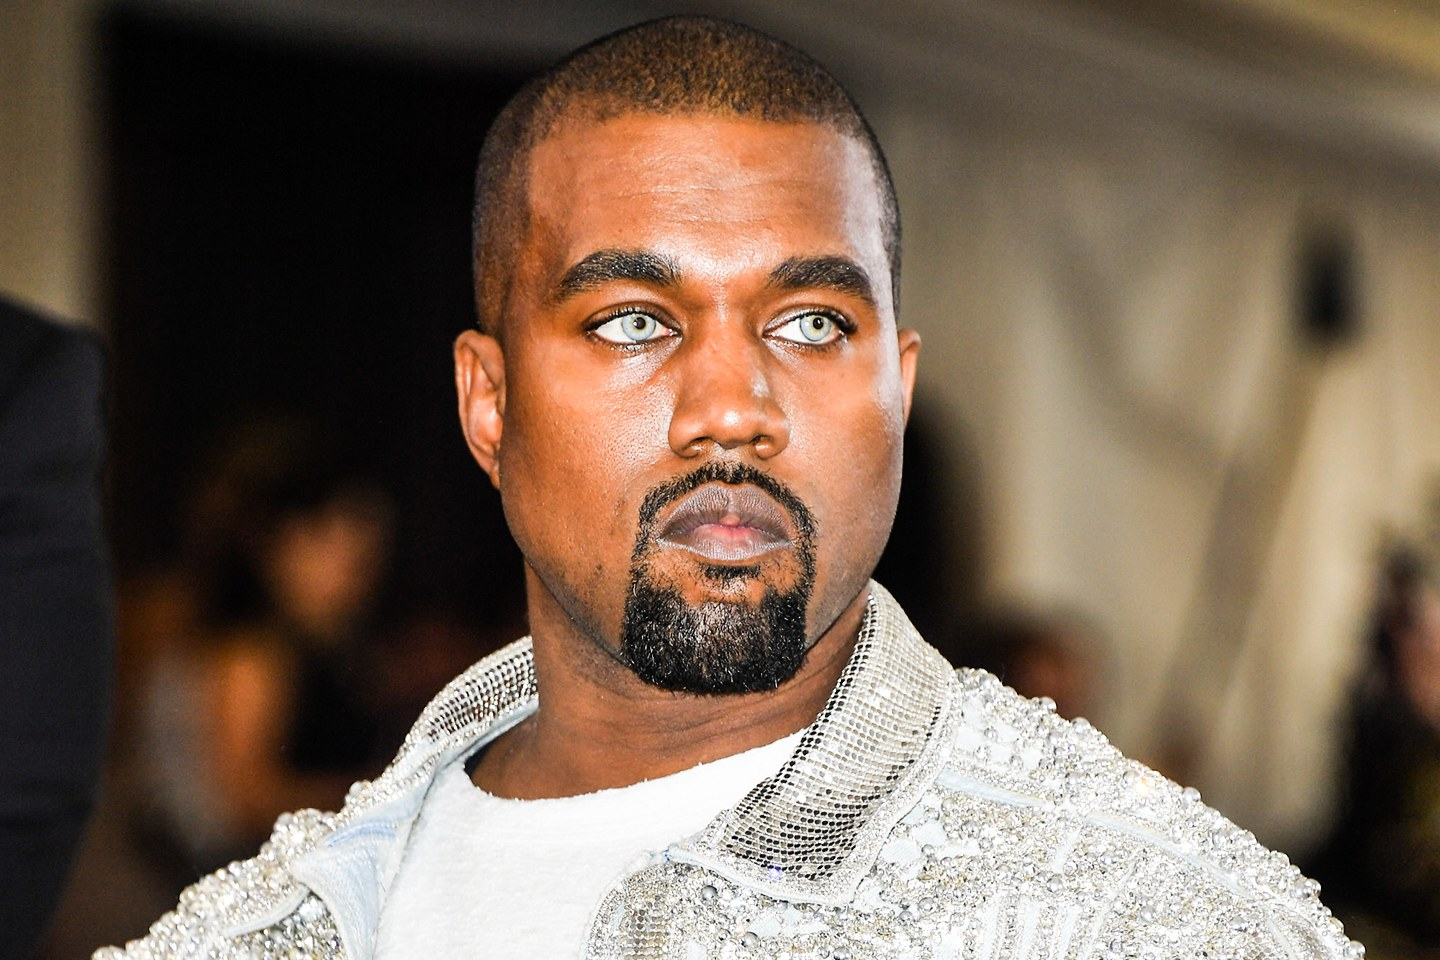 Kanye West    I am a starseed  an alien on a mission to help the Earth  Kanye West believes he s an alien